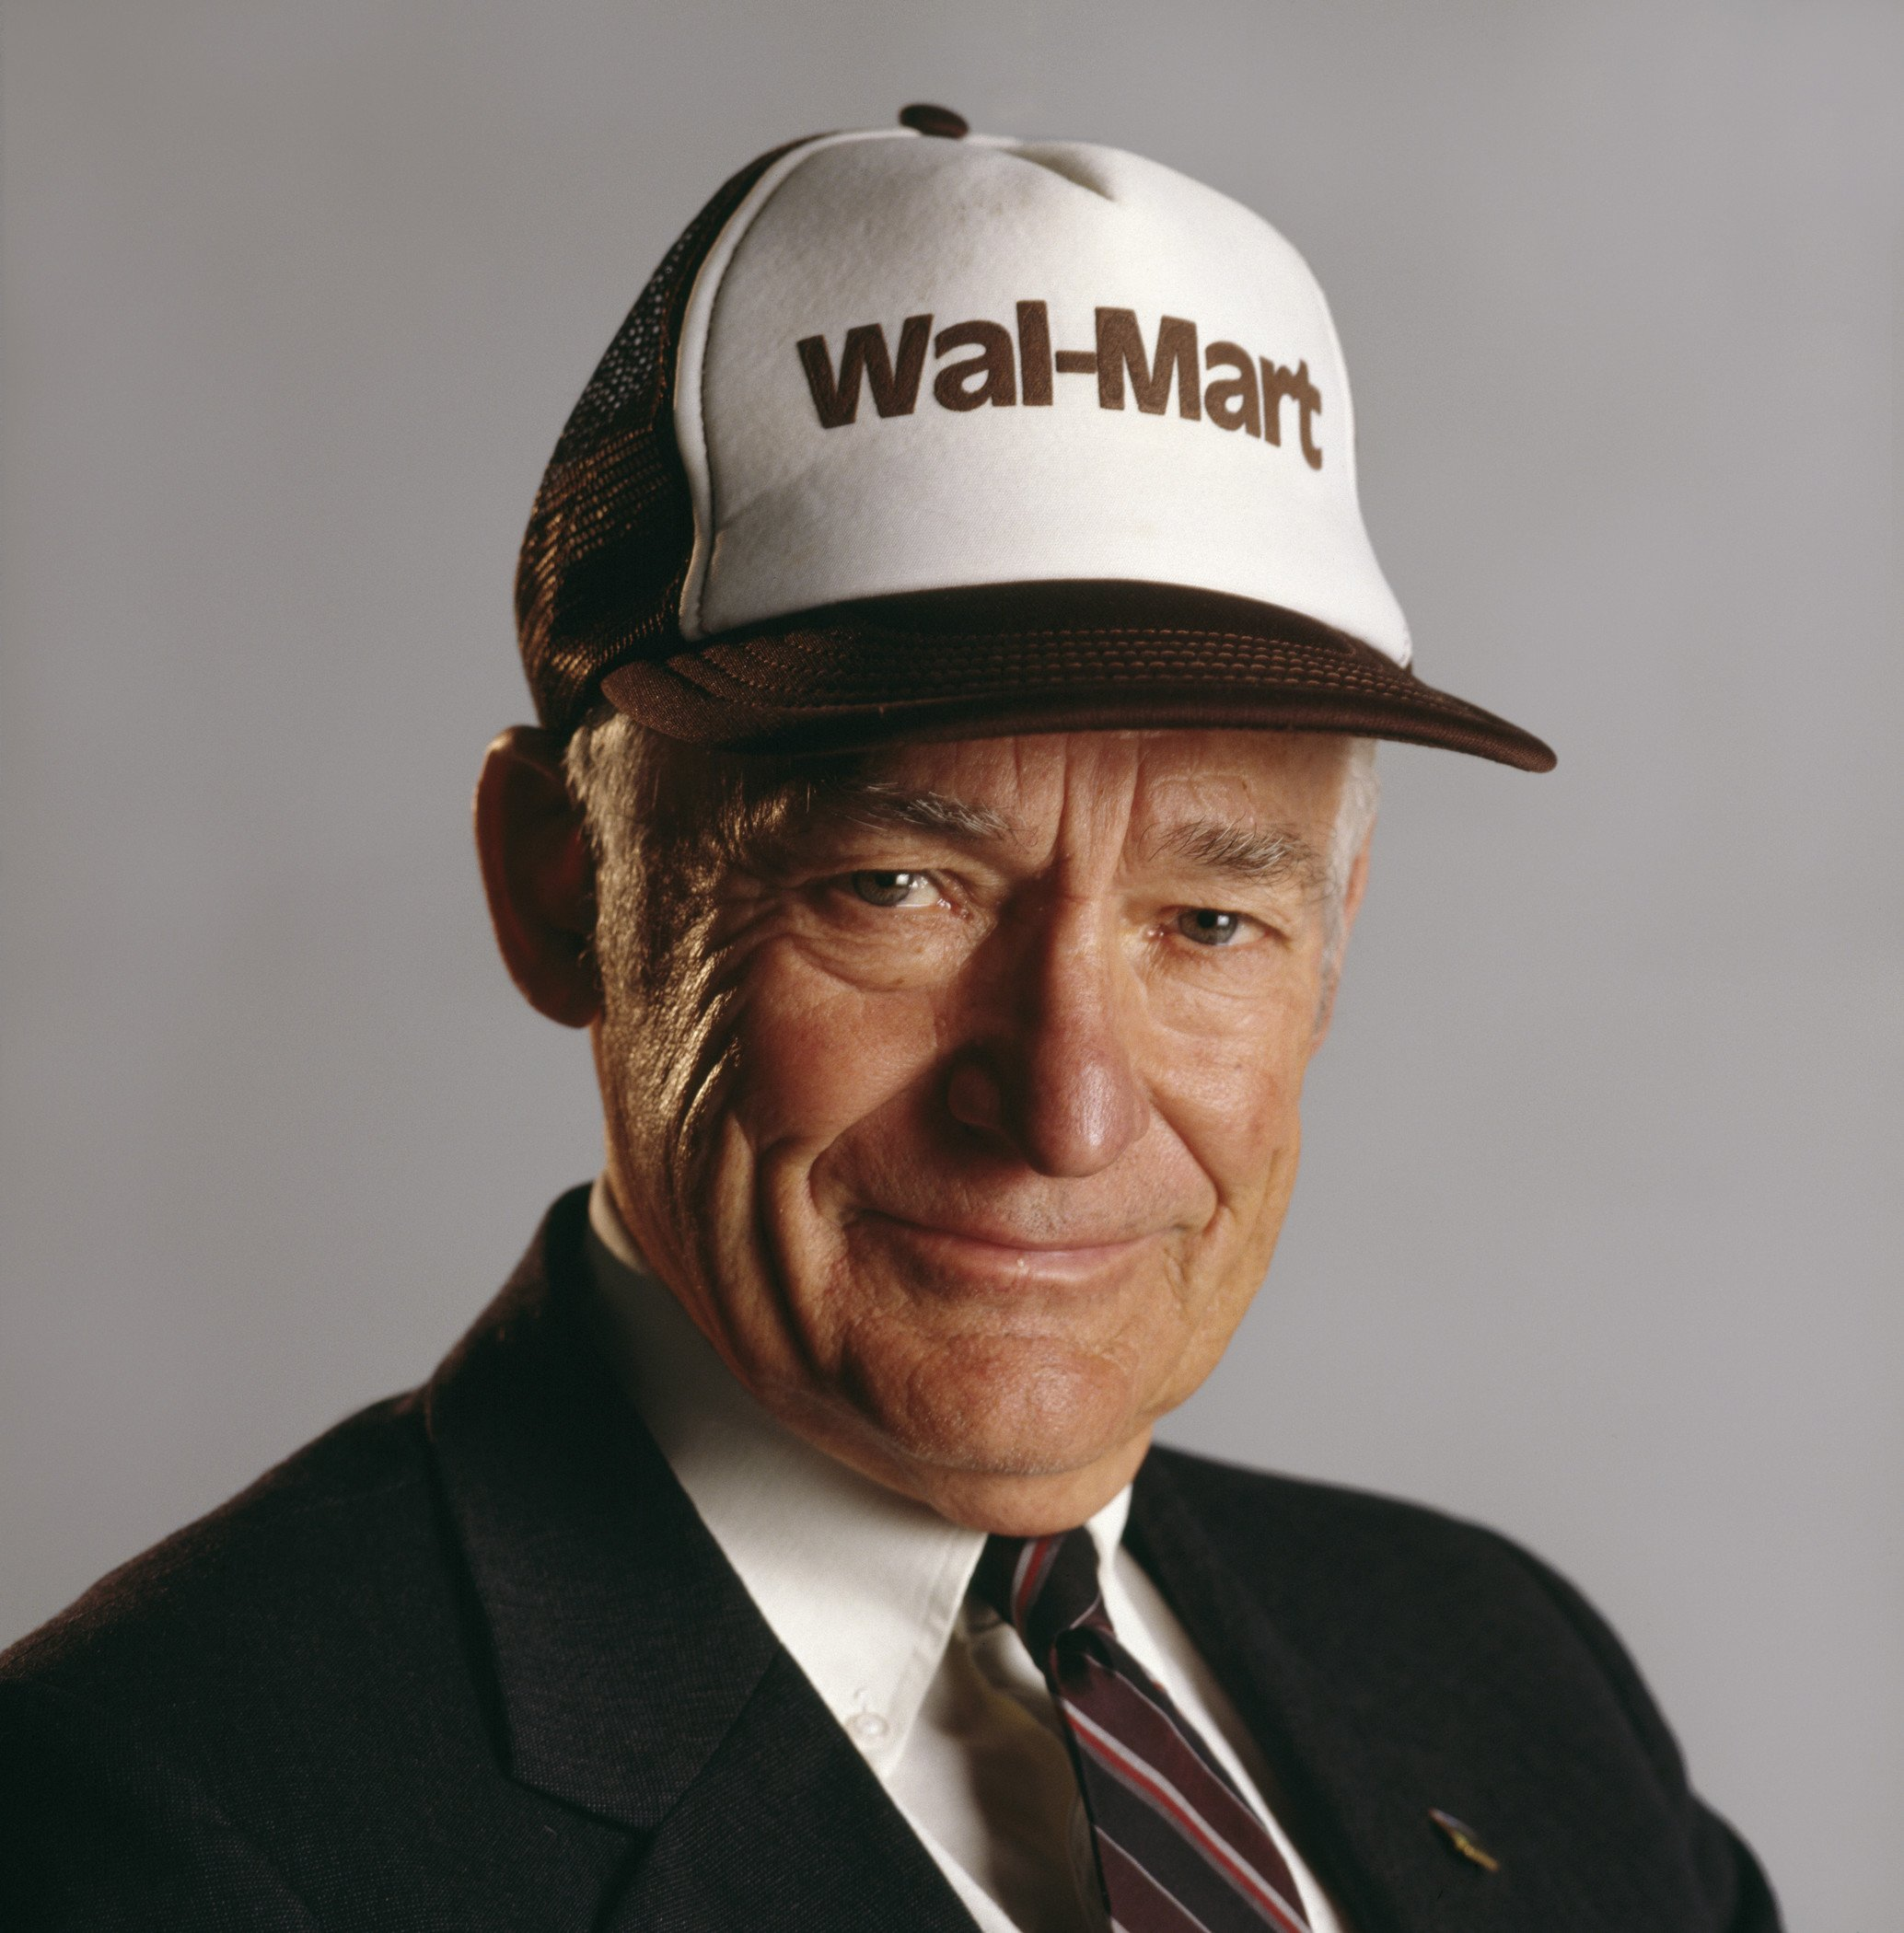 Sam Walton (1918-1992) went from being the owner of a small chain of stores to the largest retail company in the world. Image obtained from Fortune magazine.